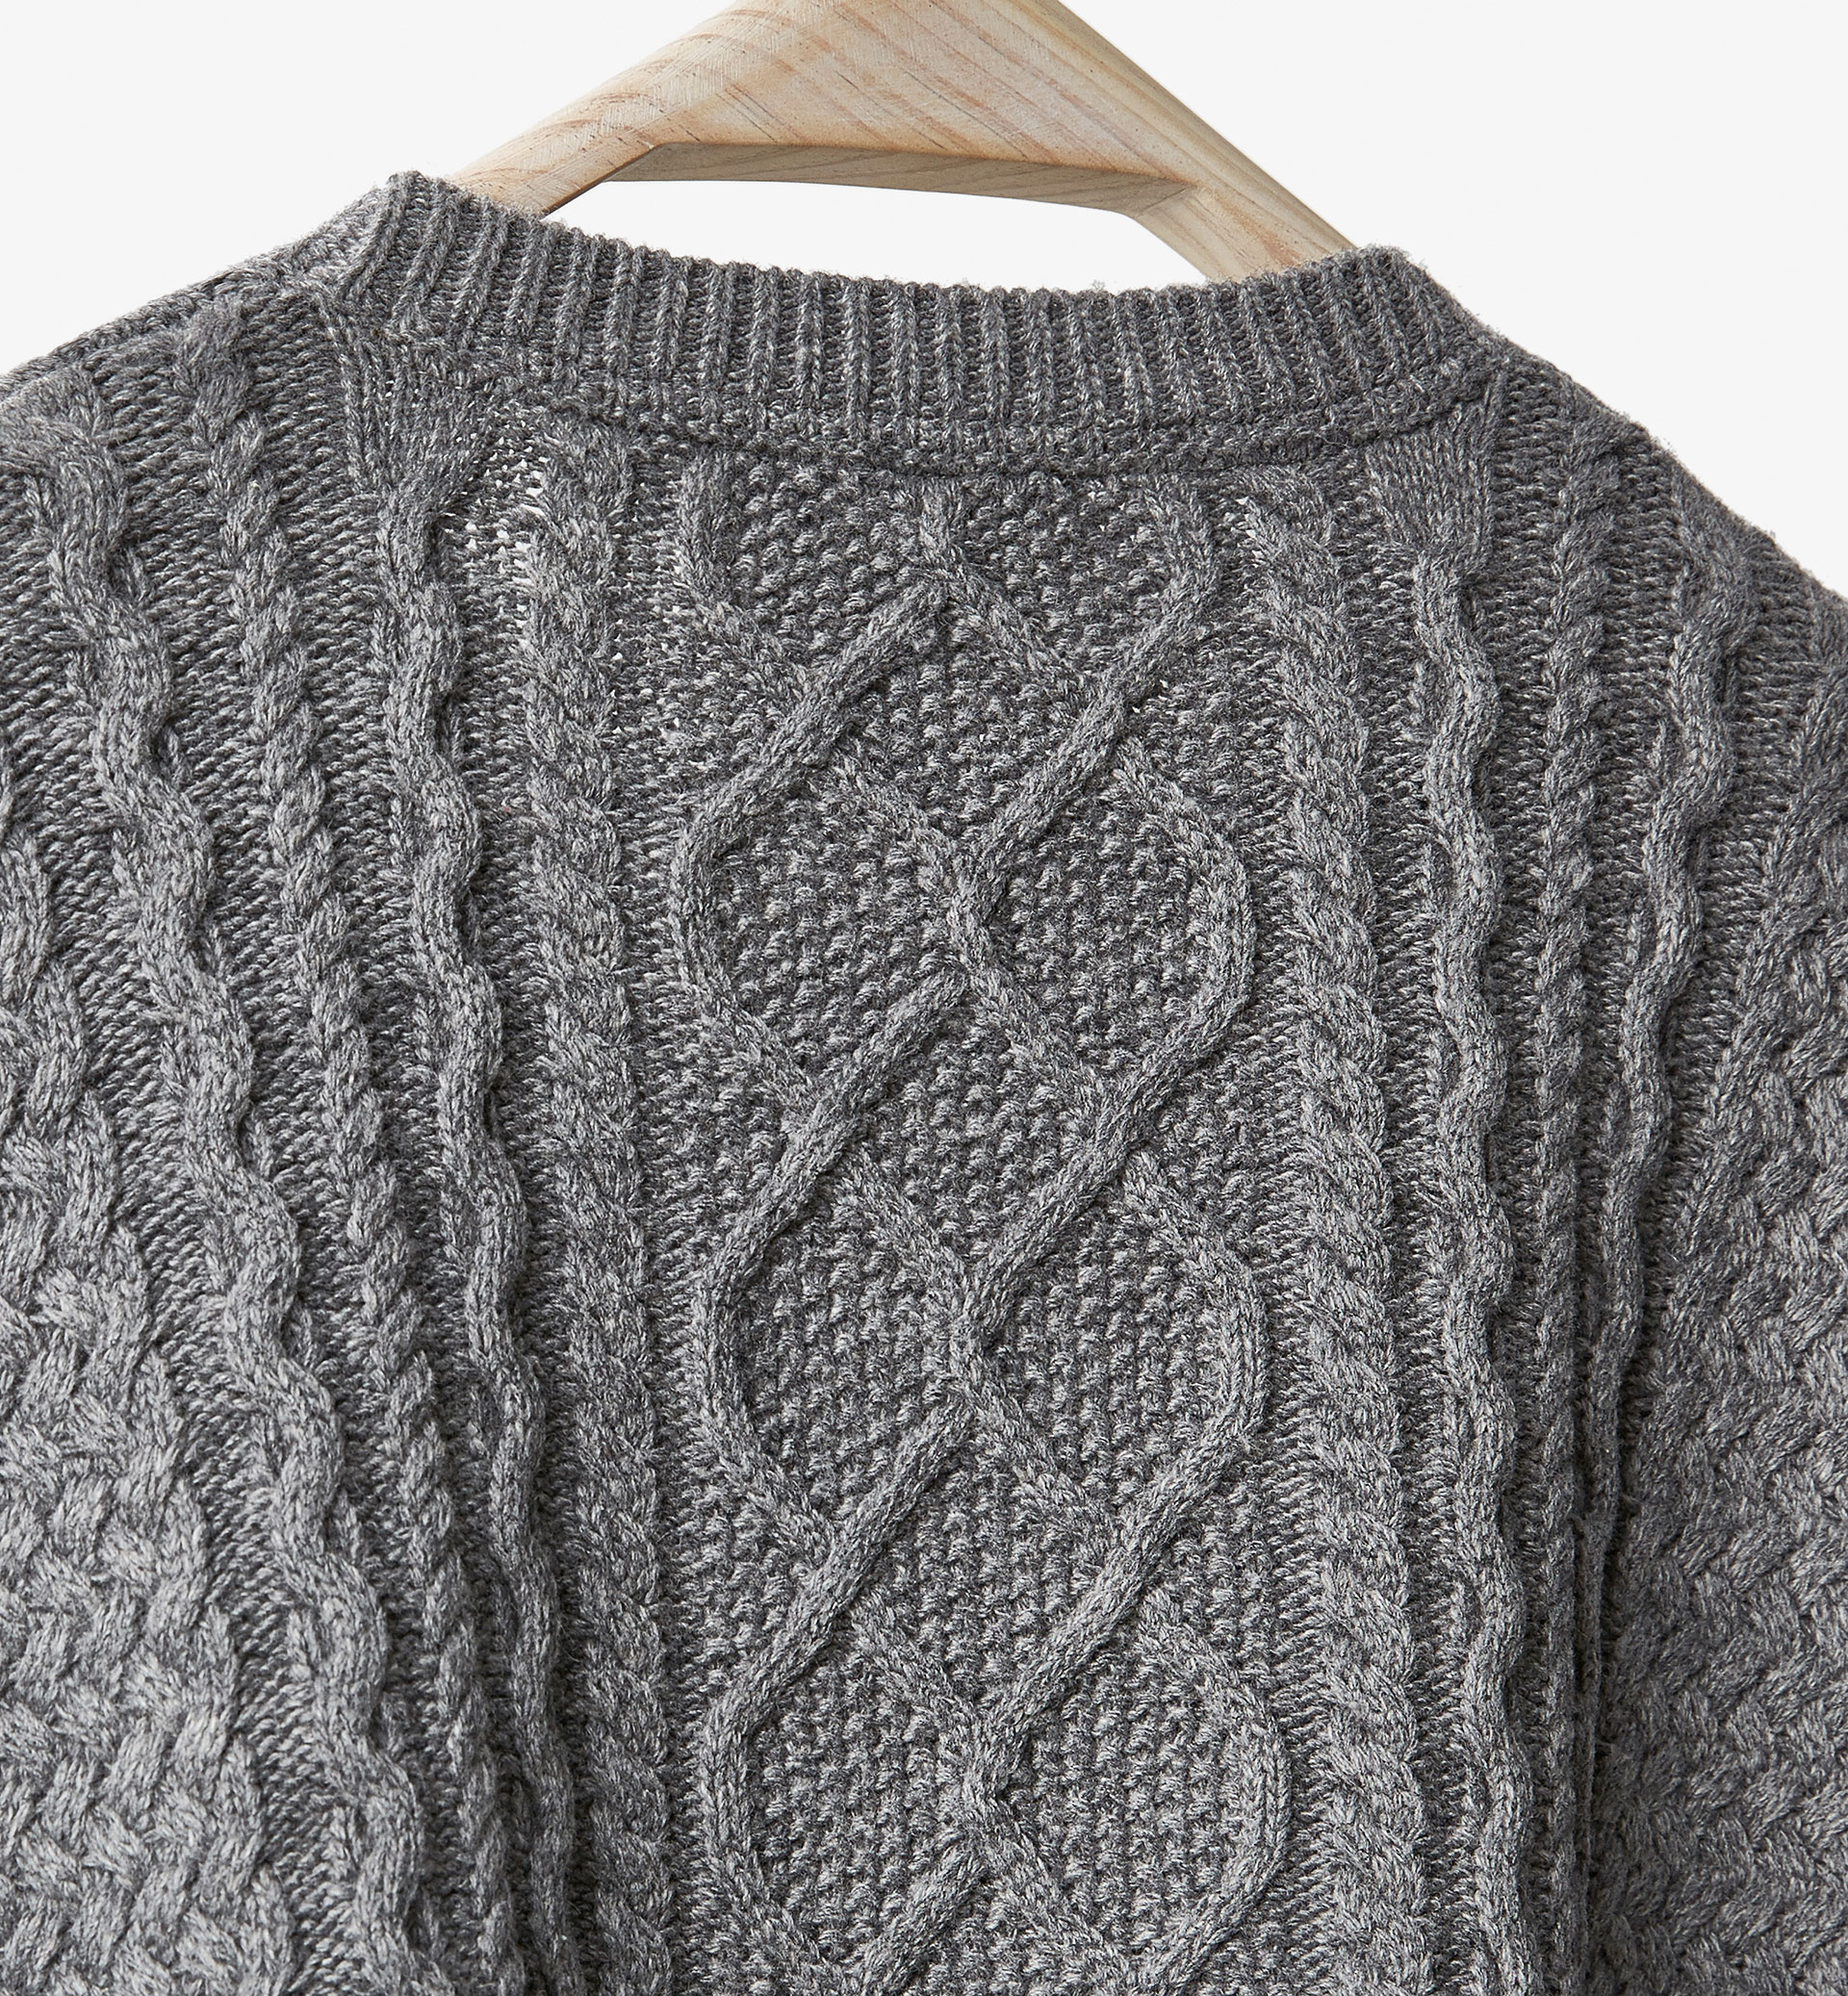 GREY CAPE WITH BRAIDING DETAIL